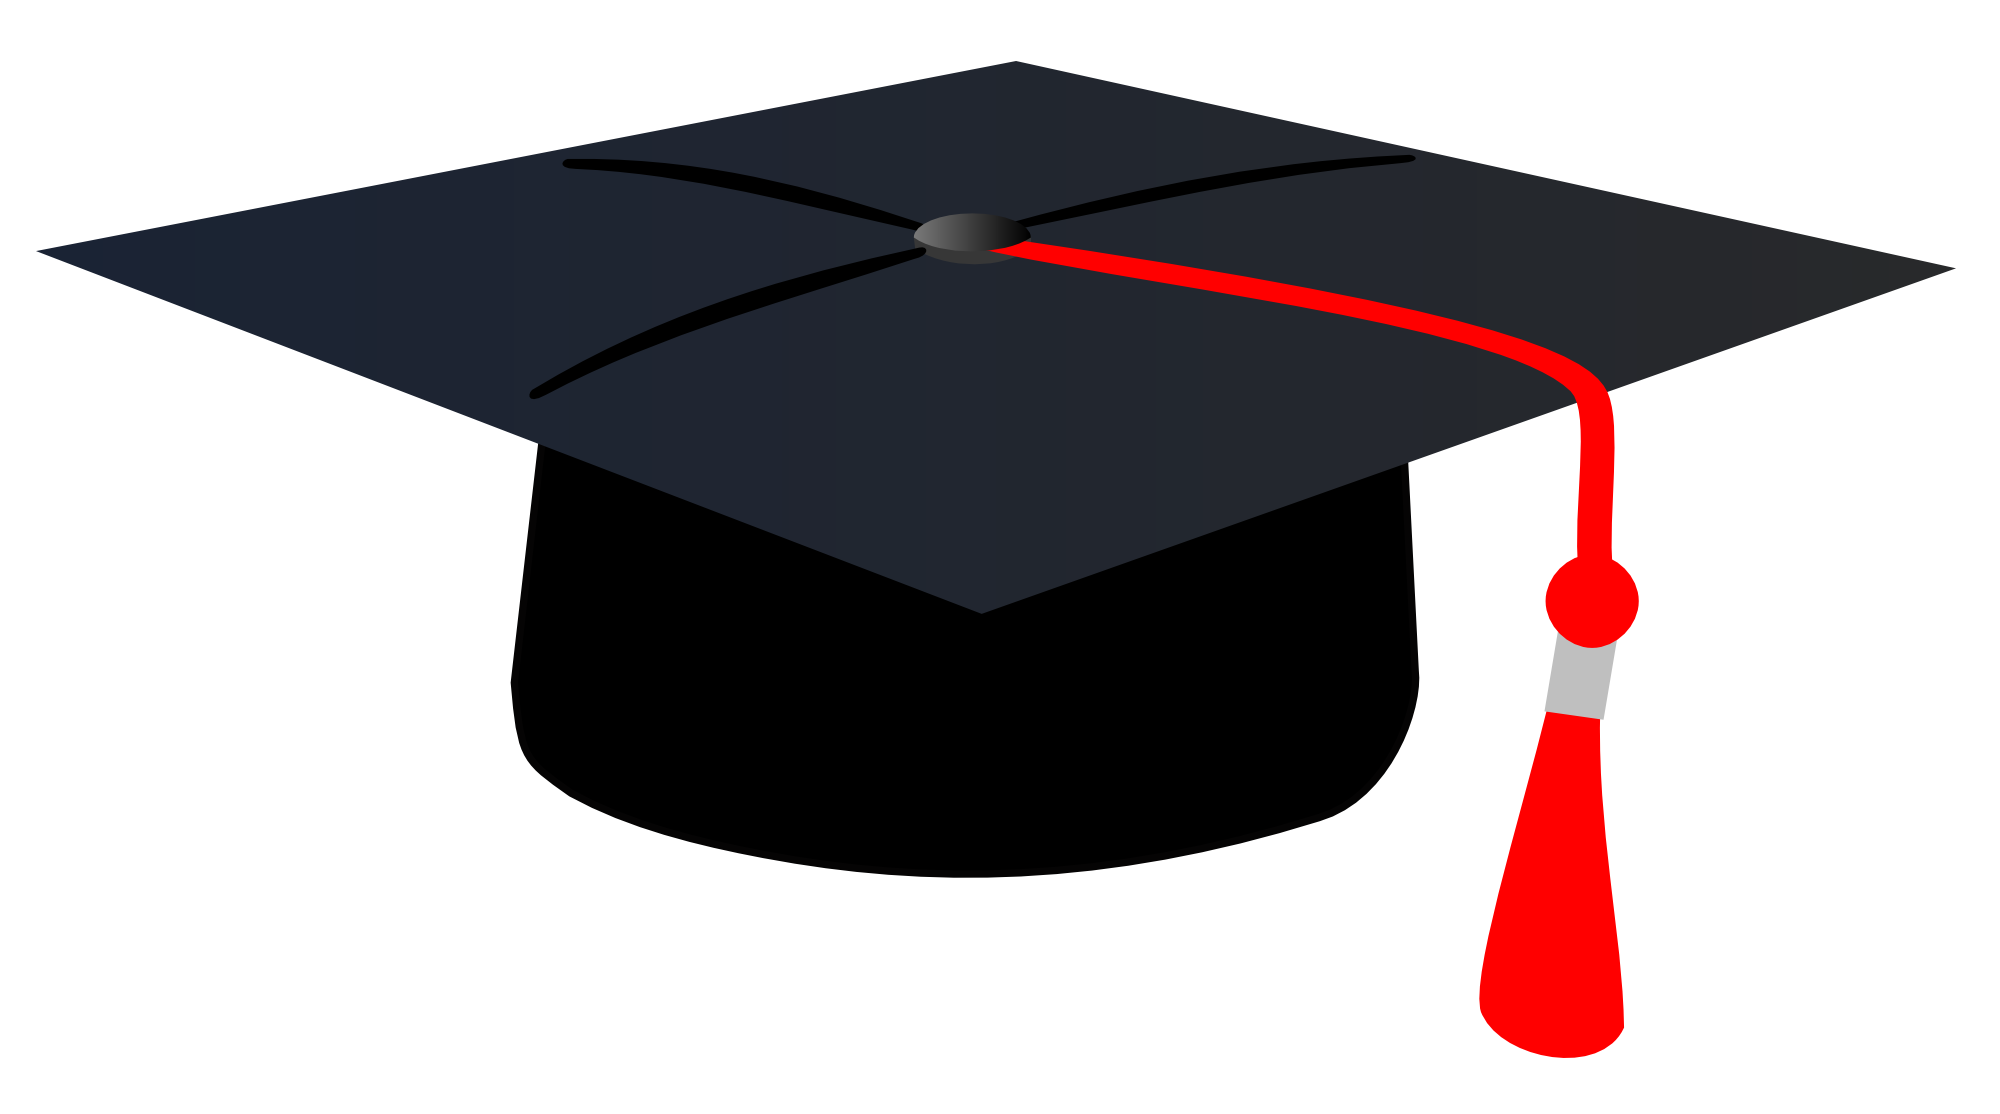 Graduation caps pictures clipart picture free stock Graduation Cap Clipart PNG Image - PurePNG | Free transparent CC0 ... picture free stock